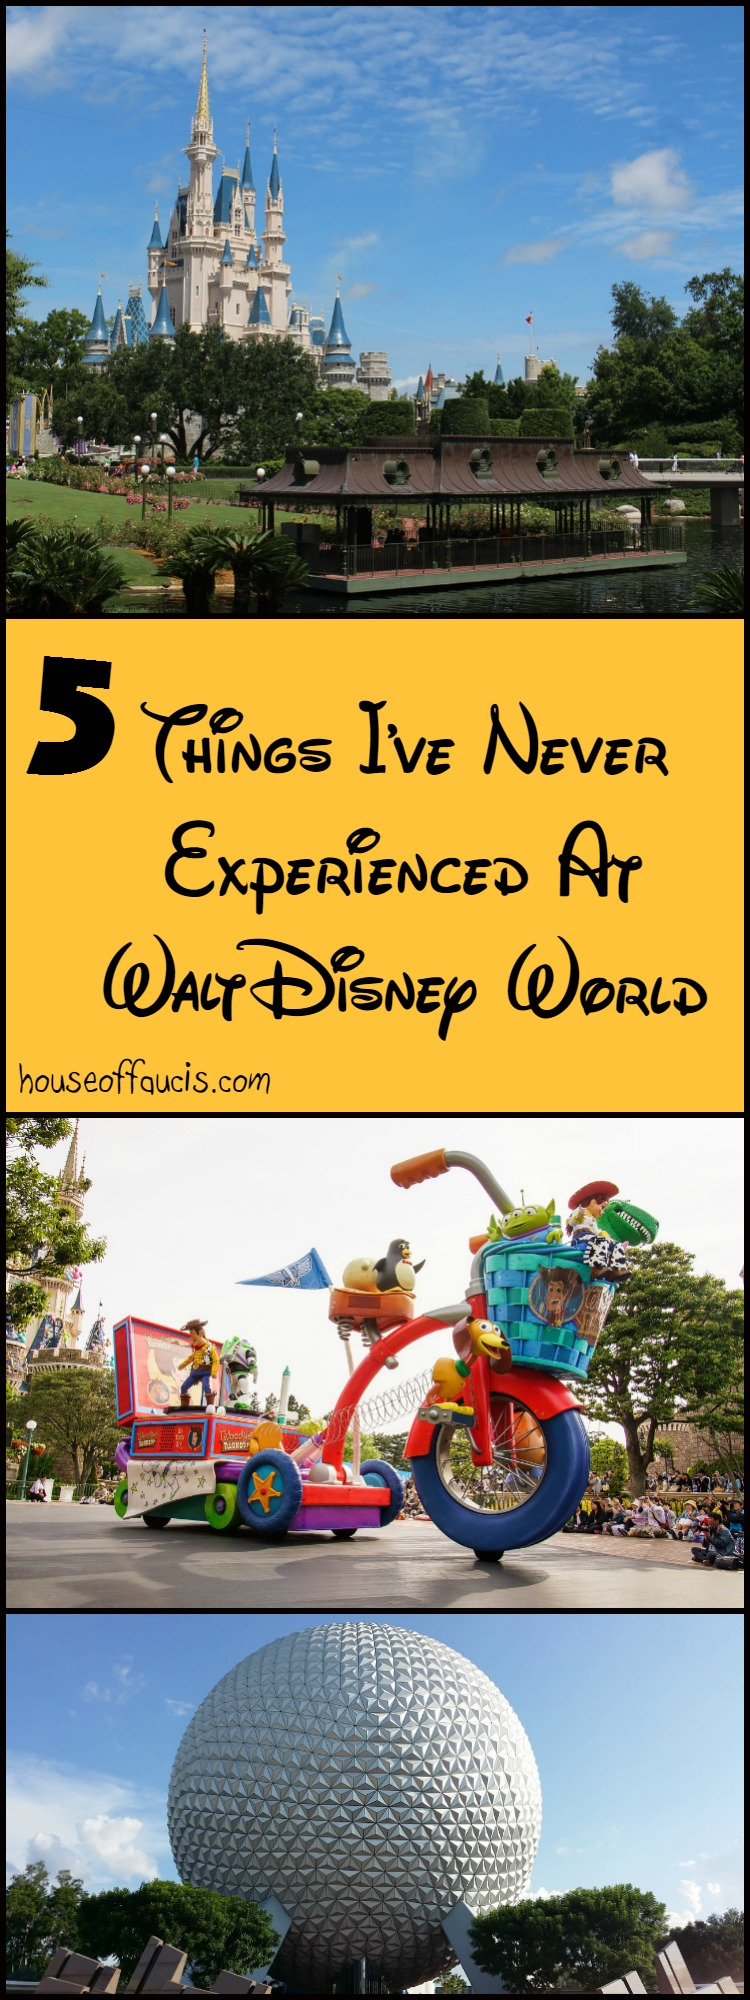 5 Things I've Never Experienced At Walt Disney World